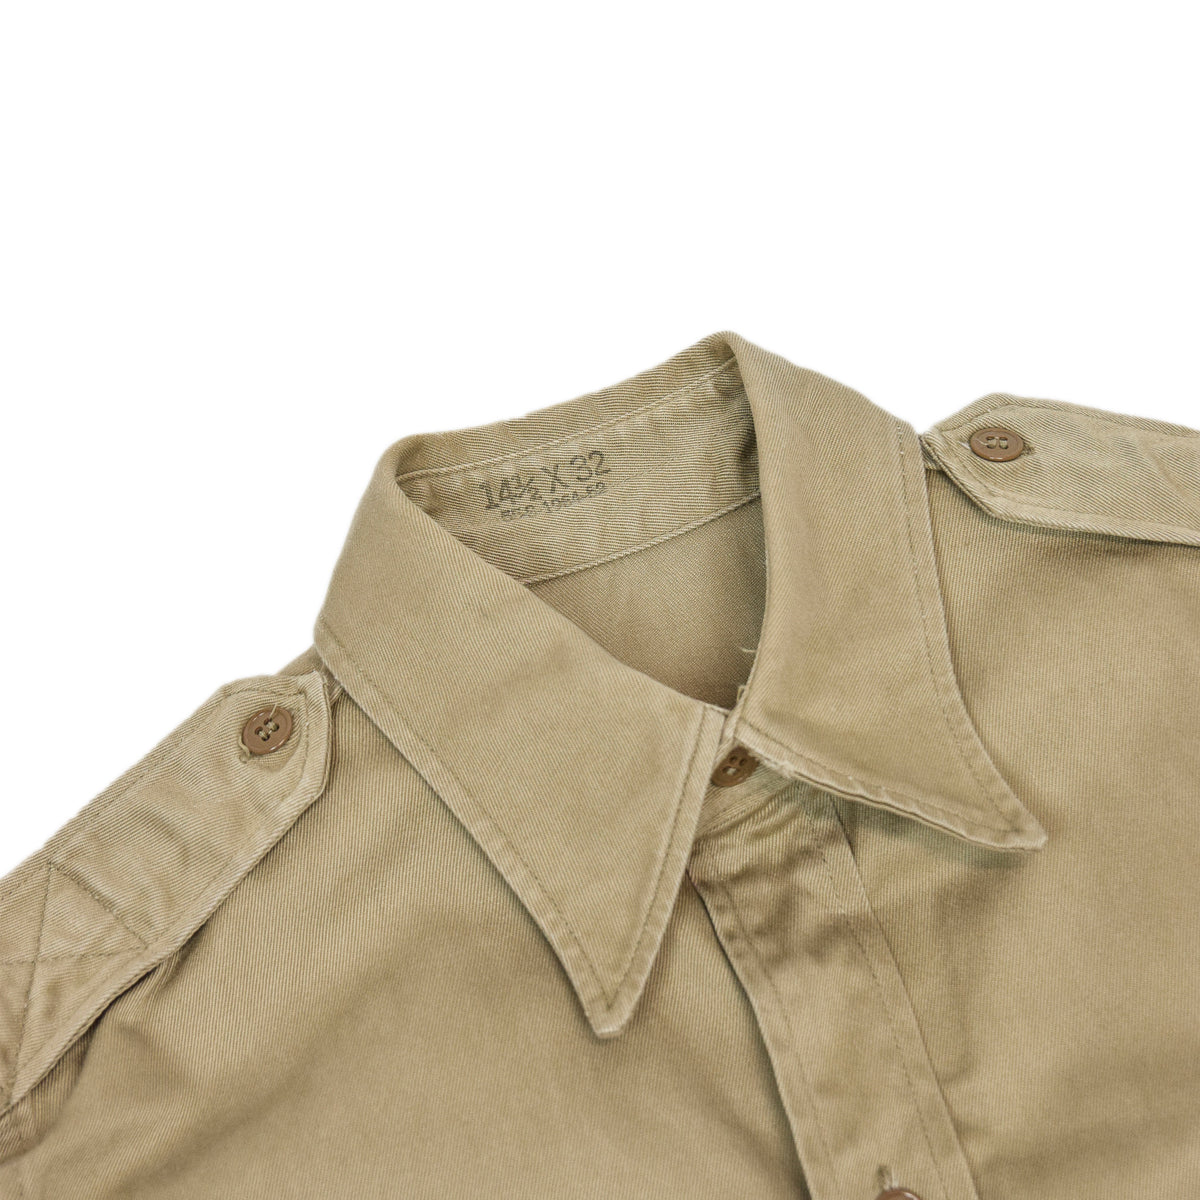 Vintage 50s Korean War US Army Khaki Cotton Stand Up Collar Field Shirt S collar